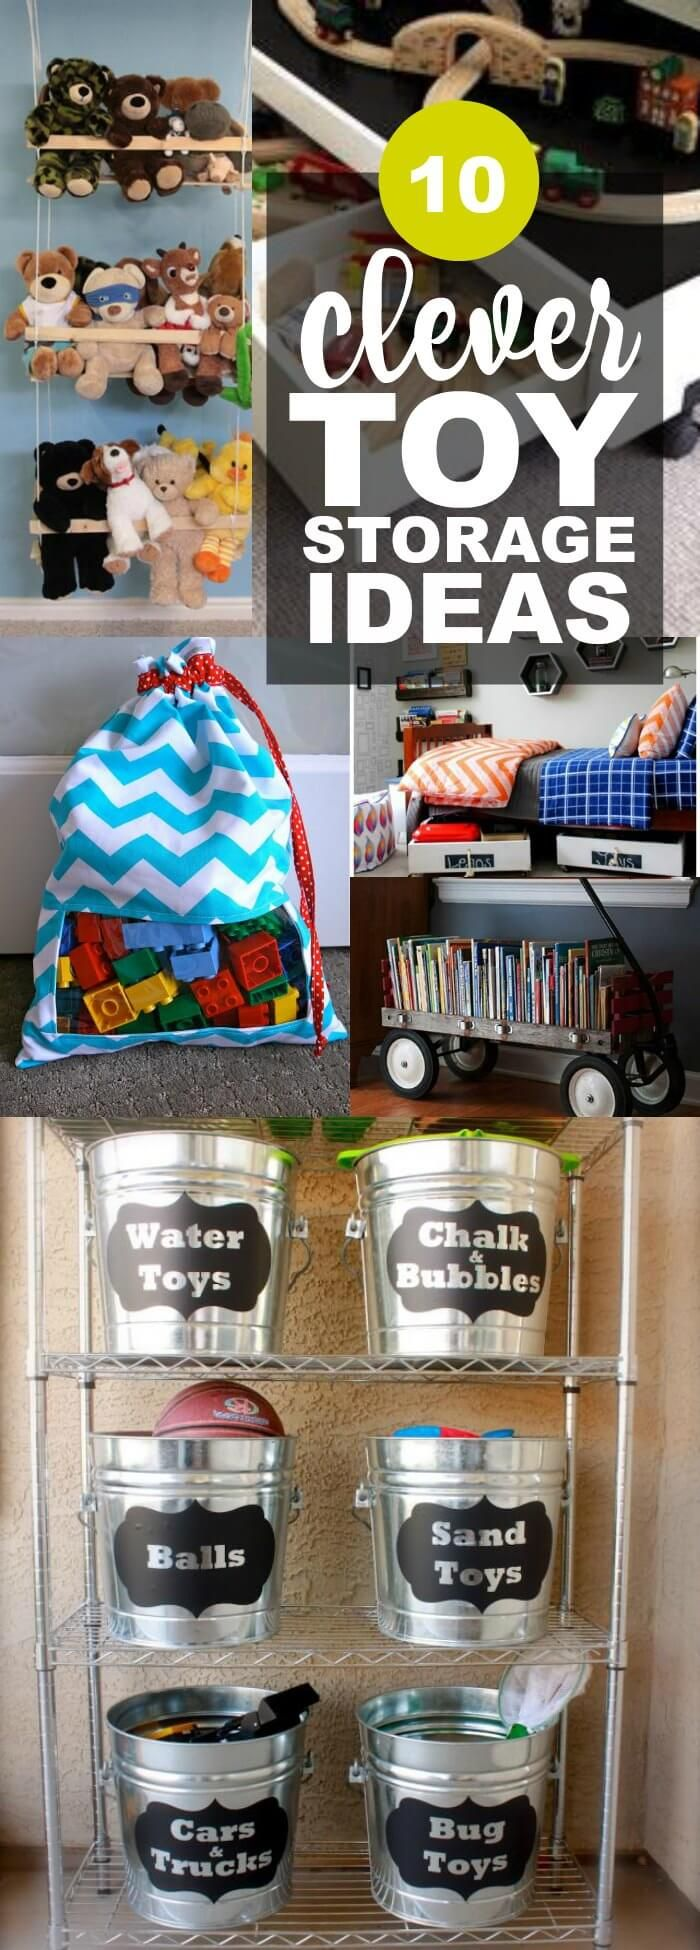 I have put together this list of clever toy storage ideas such as a DIY peek-a-boo toy sack, a DIY stuffed animal swing, hanging planter toy storage, a clever way to organize outside toys, a DIY wagon book shelf, a DIY toy storage bin, a DIY matchbox car garage, a DIY side storage book shelf, a rolling under bed storage cart, and an oh-so-cute under the bed play table. Organization is a beautiful thing! via @spaceshipslb